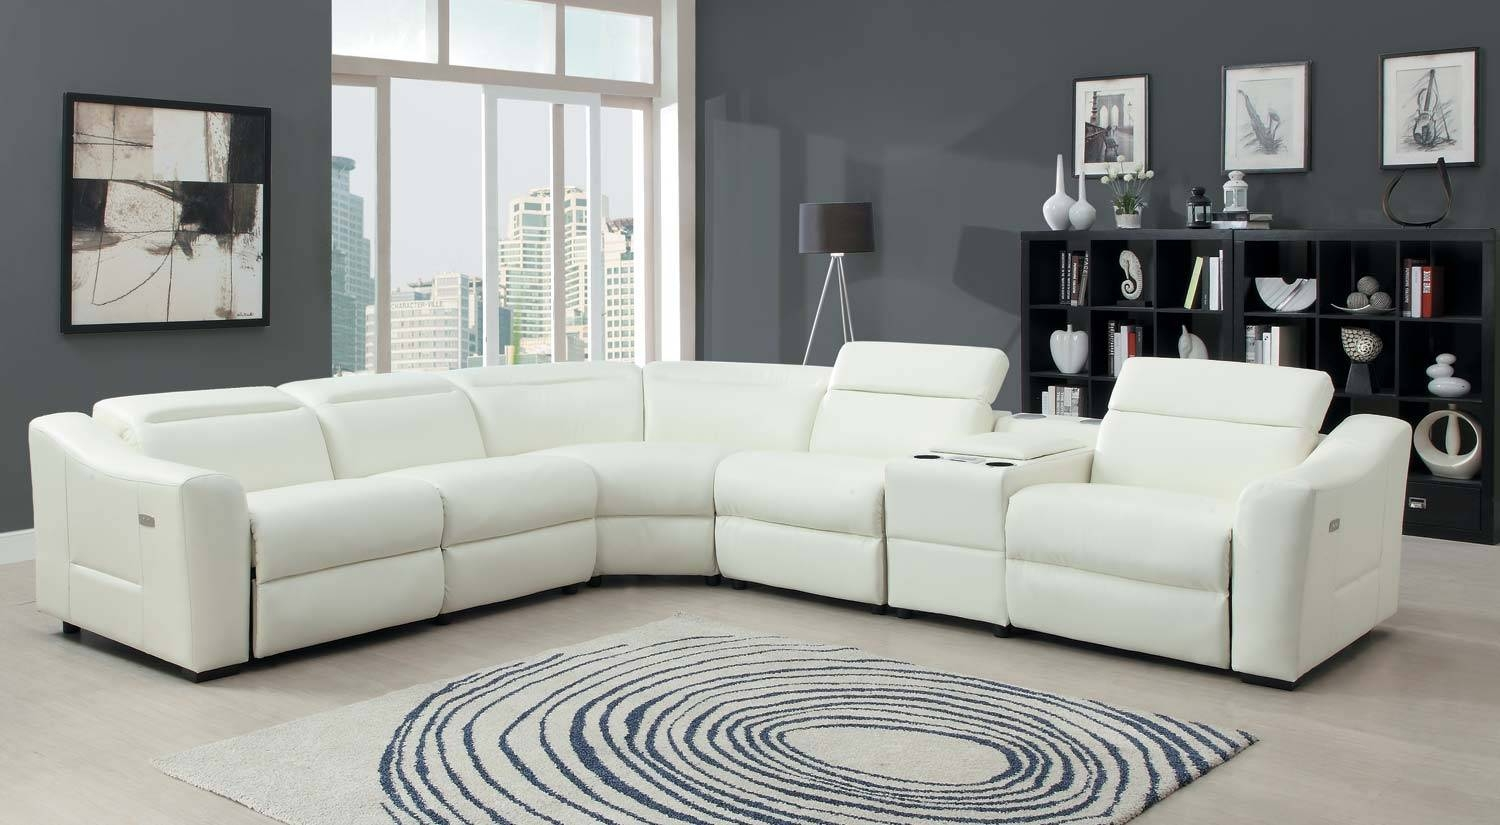 Best Leather Sectional Sofa With Power Recliner 59 On Durable regarding Durable Sectional Sofa (Image 9 of 30)